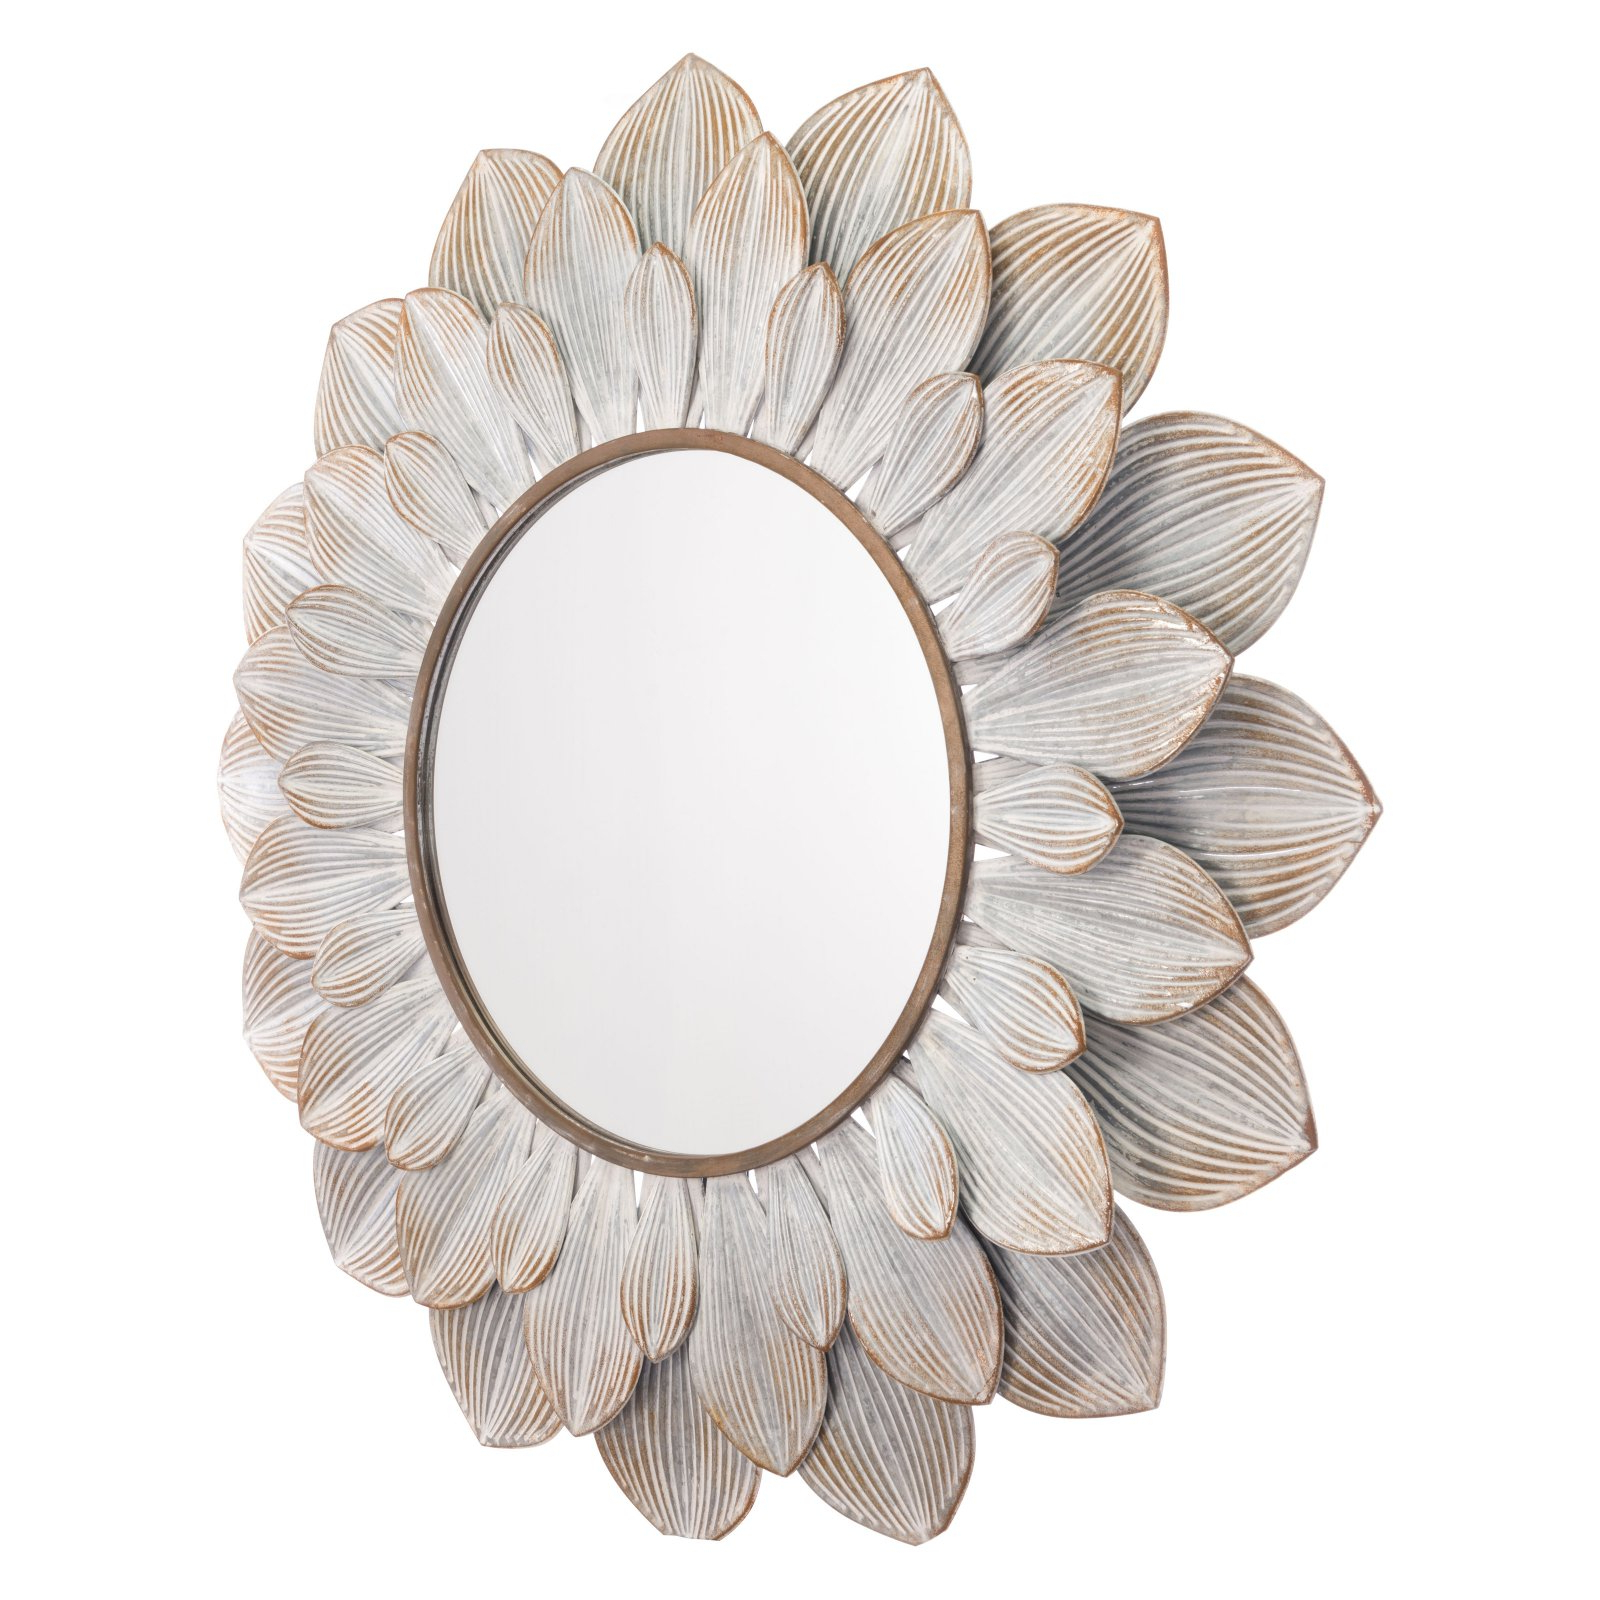 2020 Knott Modern & Contemporary Accent Mirrors Pertaining To Zuo Modern Contemporary Distressed Brown Flora Mirror – 39W X (View 15 of 20)